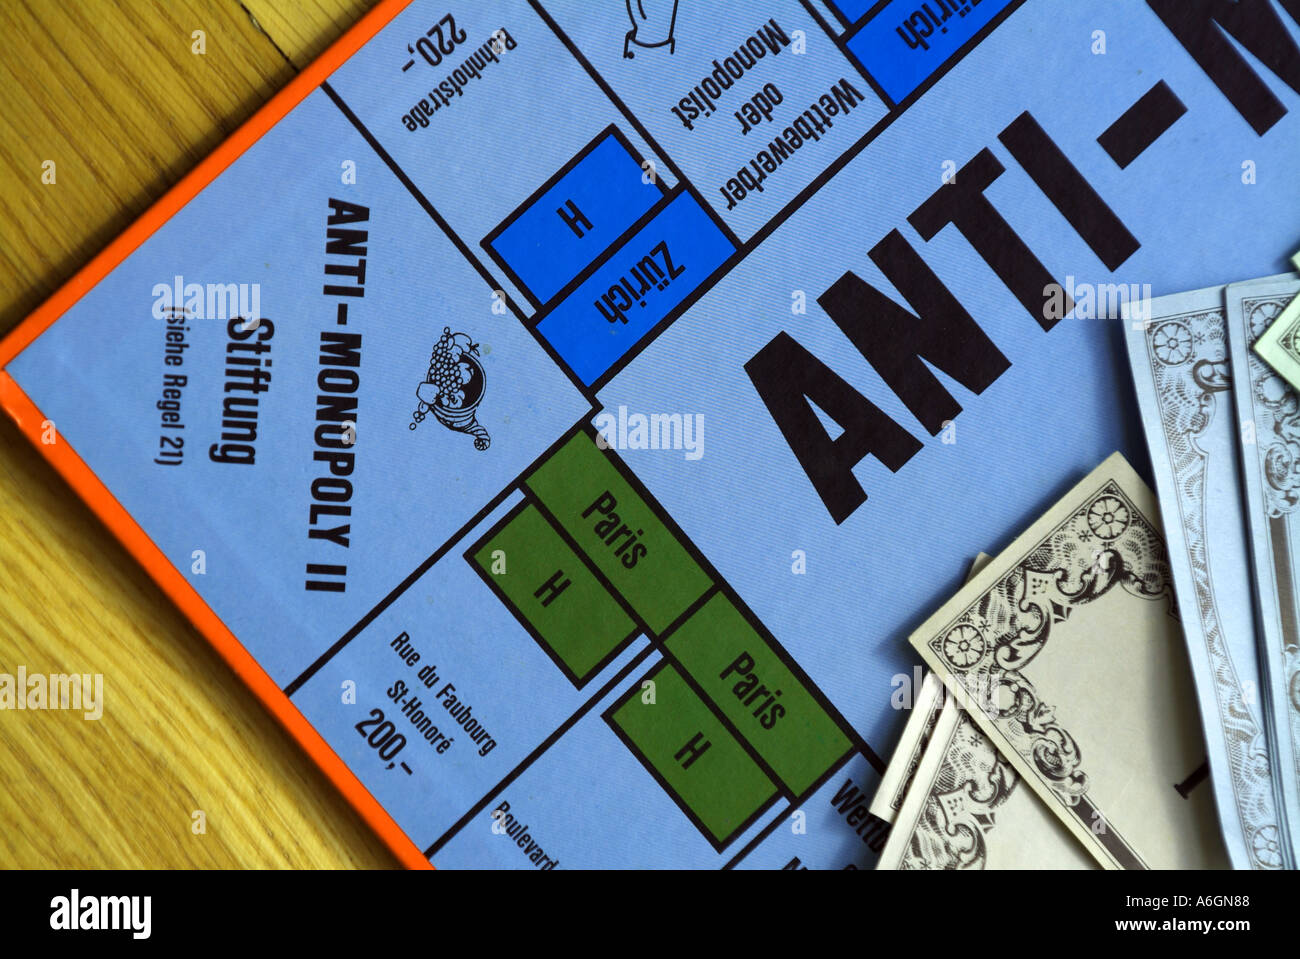 anti monopoly board game review